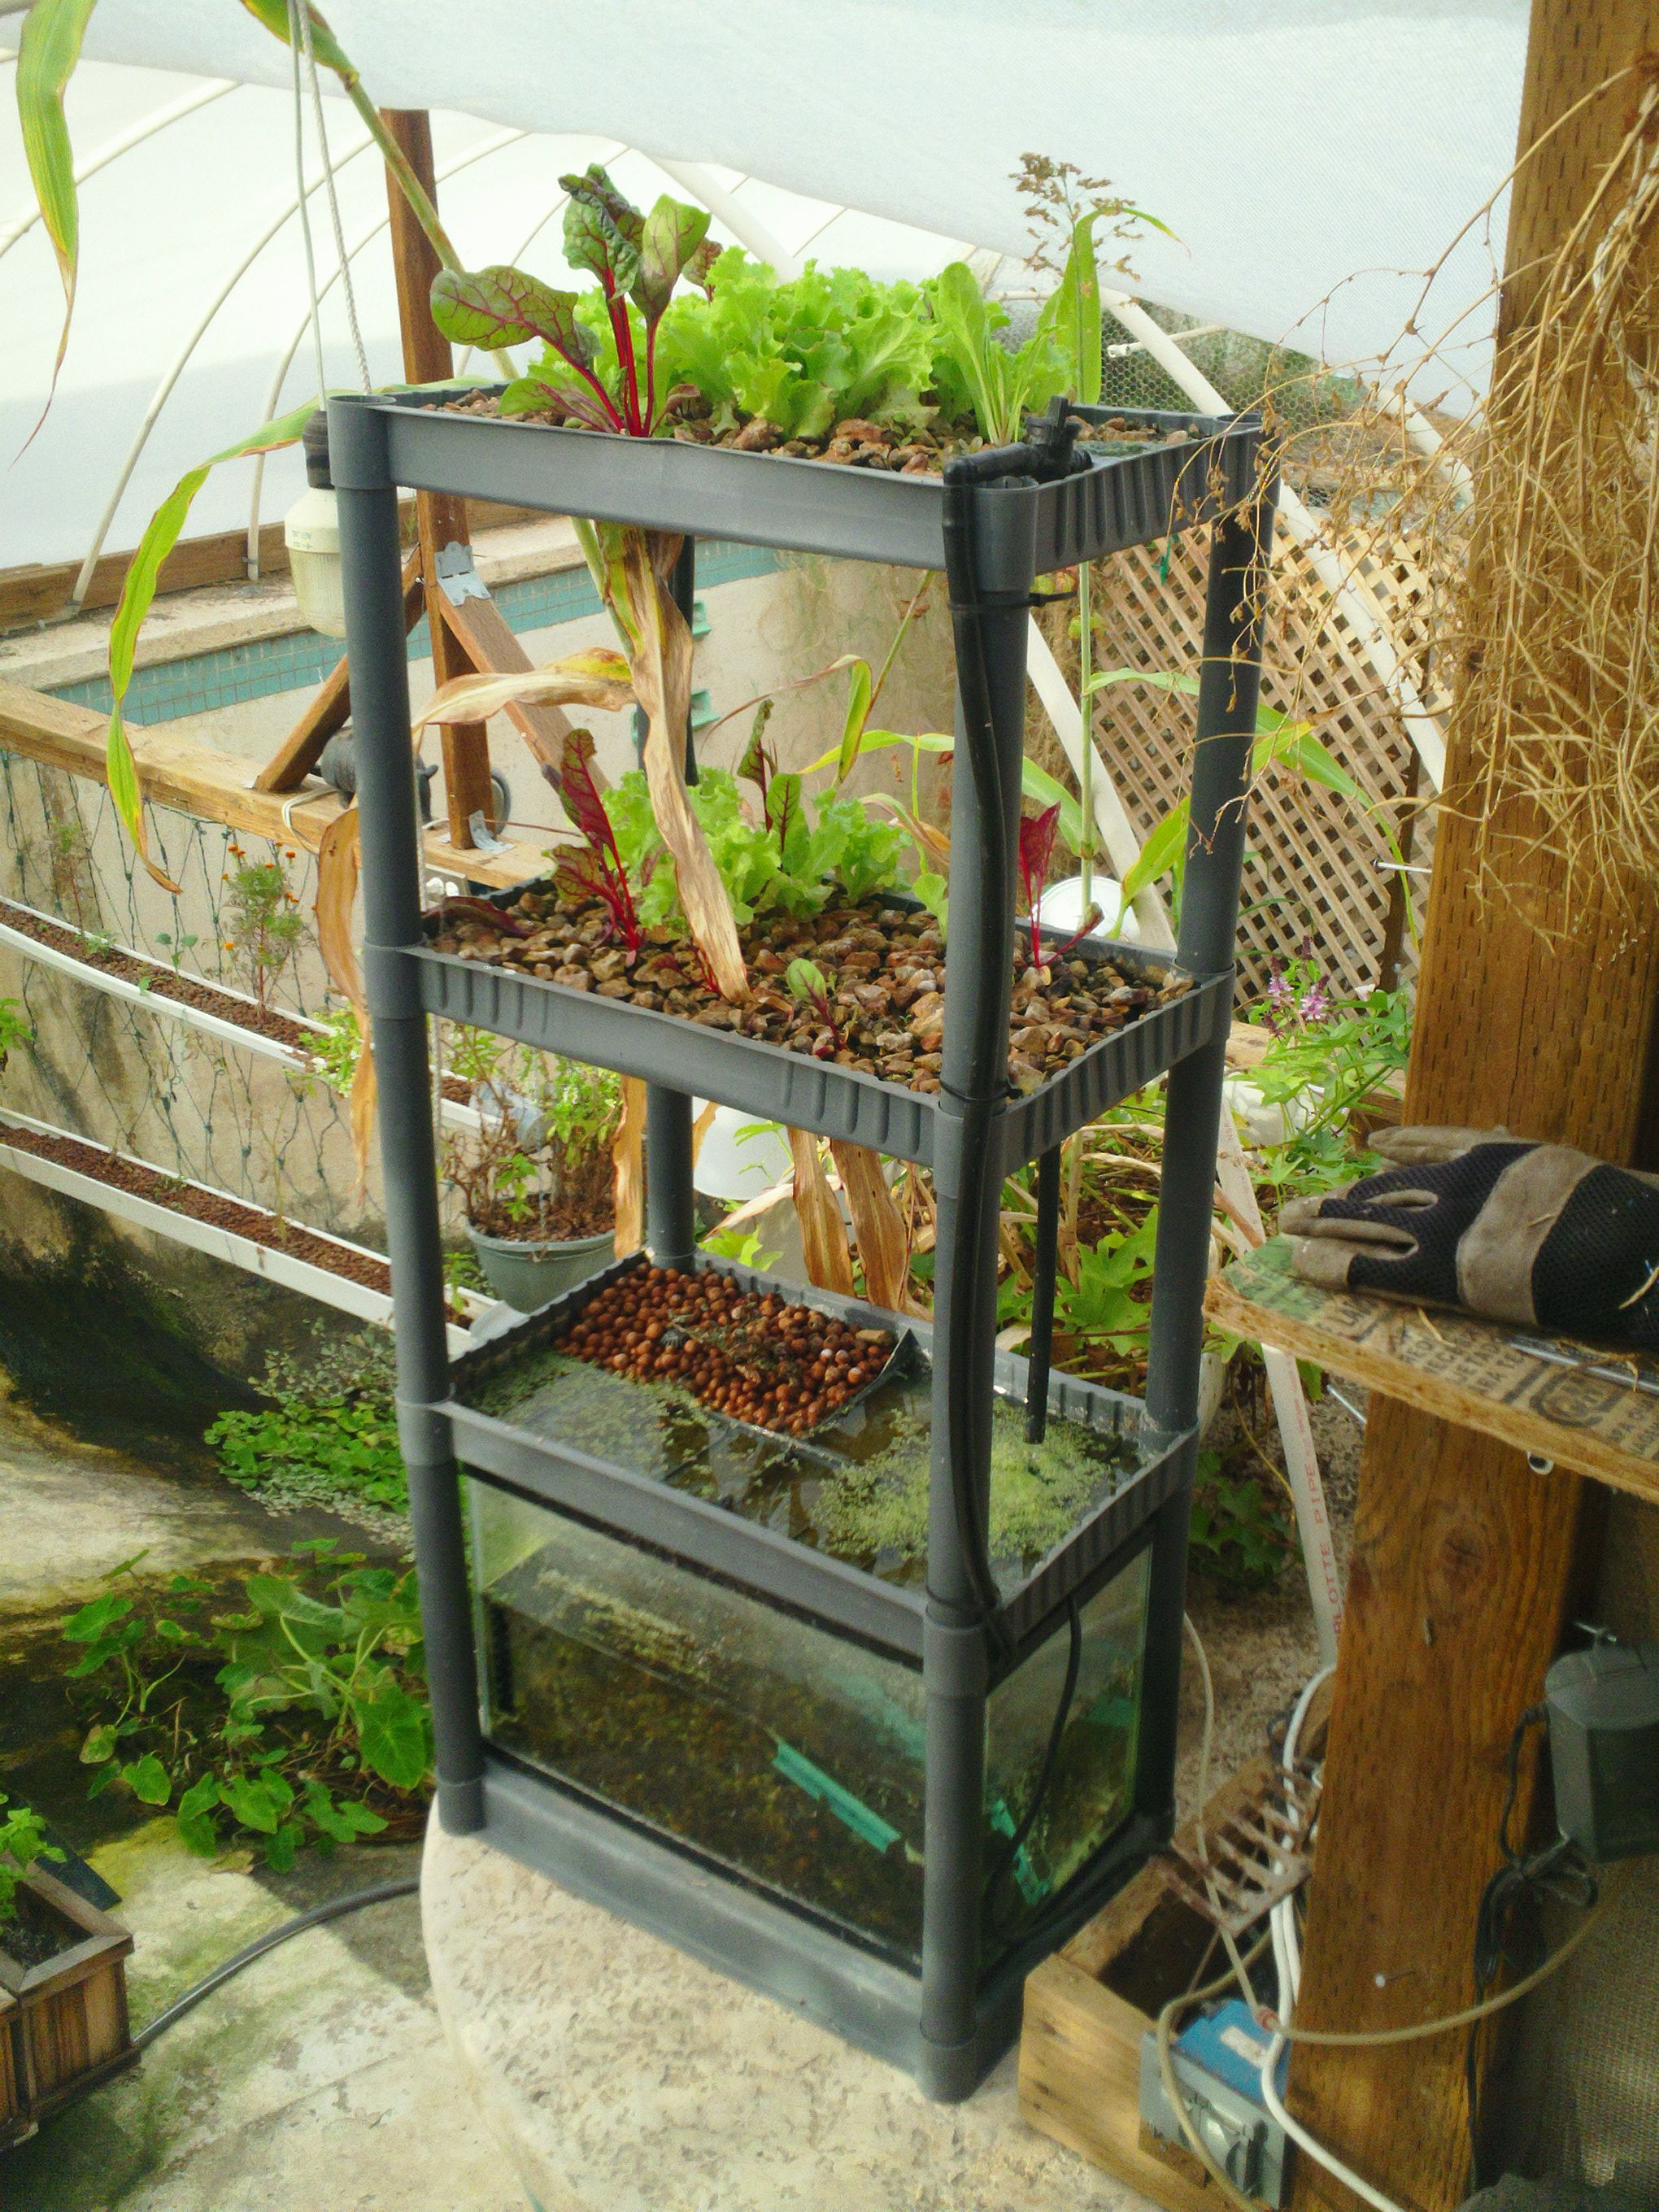 DIY Shelfponics By Gardenpool Aquaponics Shelfponic